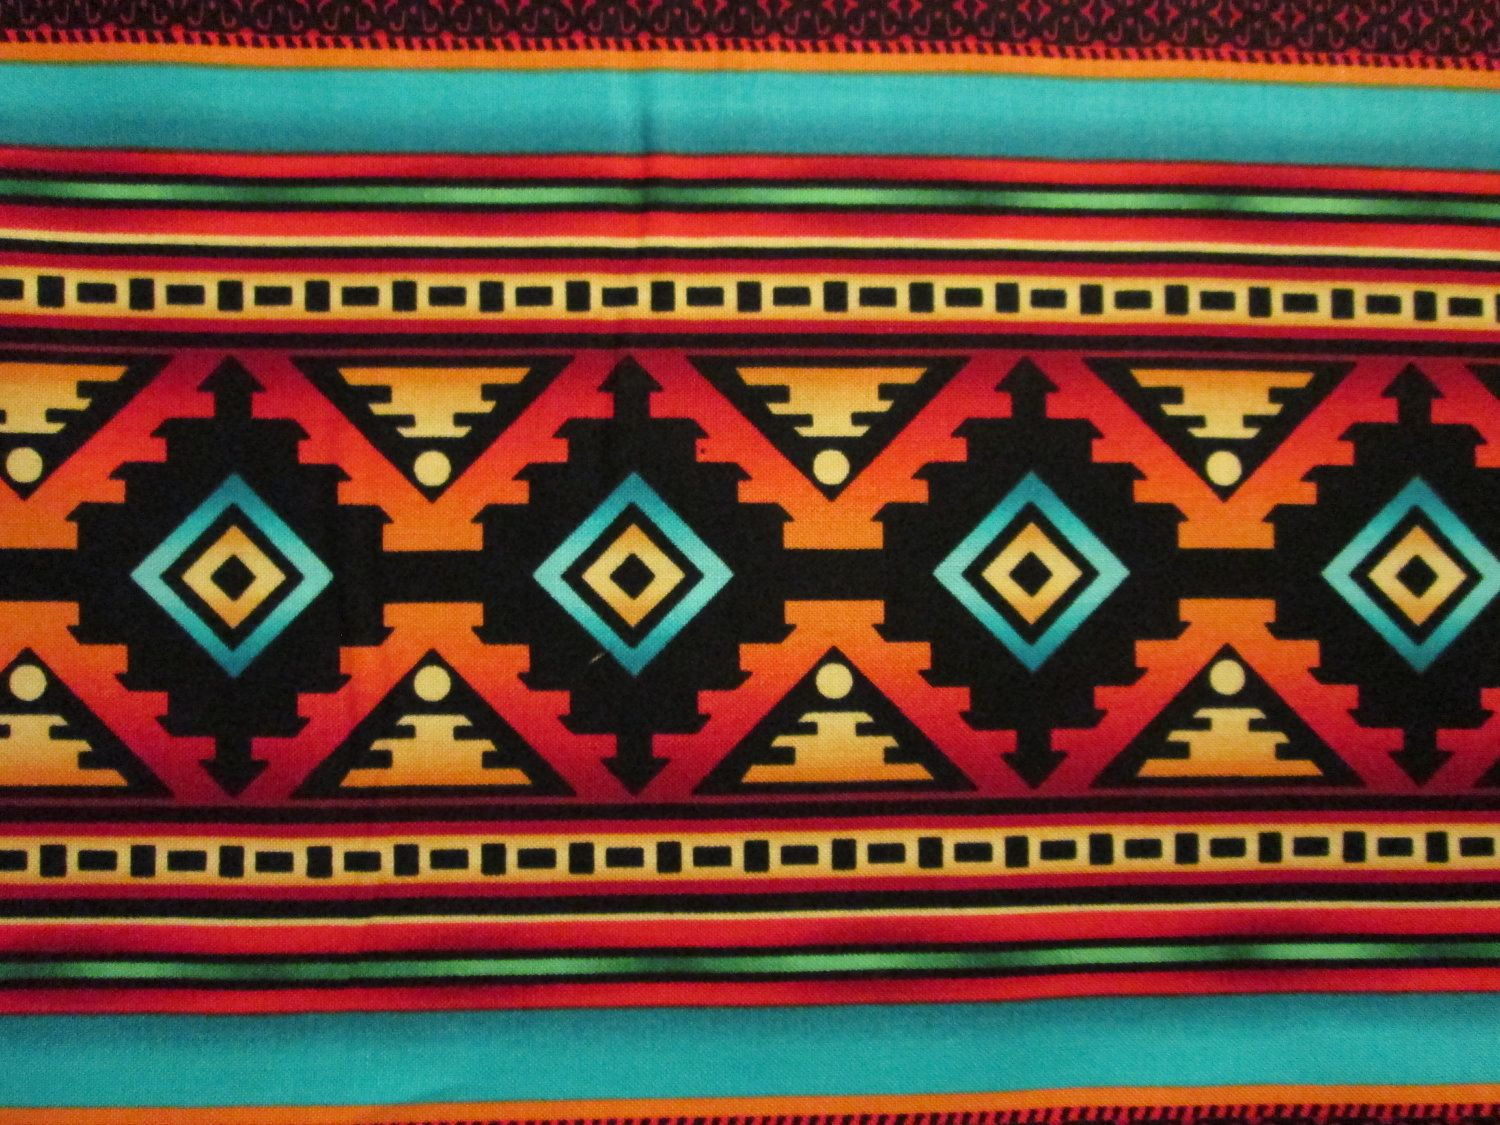 native art wallpaper border - photo #3